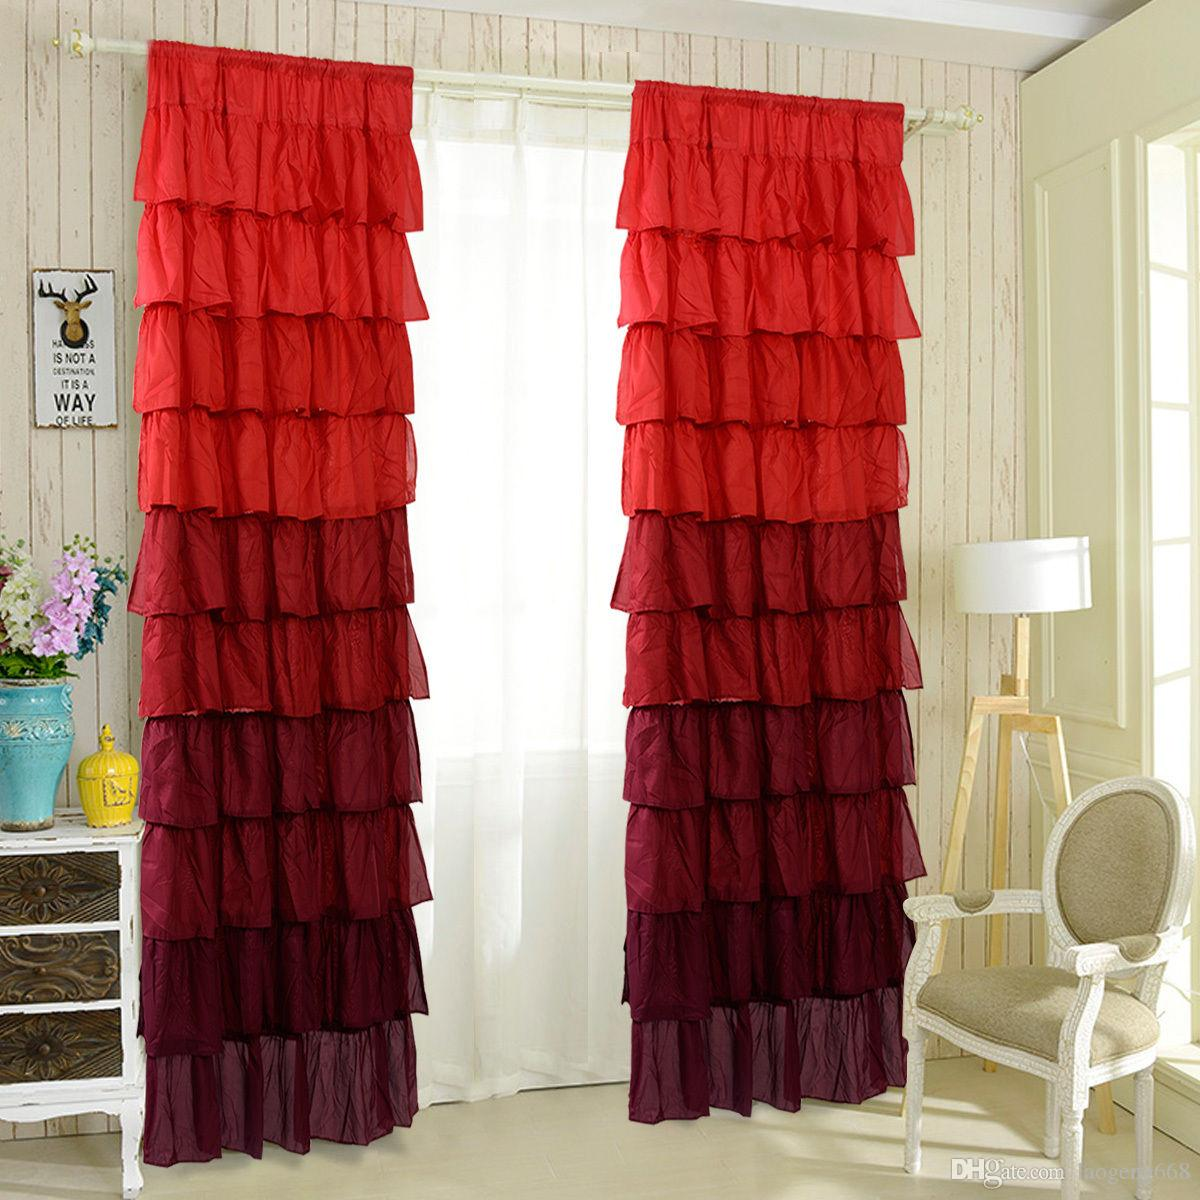 54x84 Ruffle Sheer Curtain Panels Drapes Valances Top Rod Pocket ...